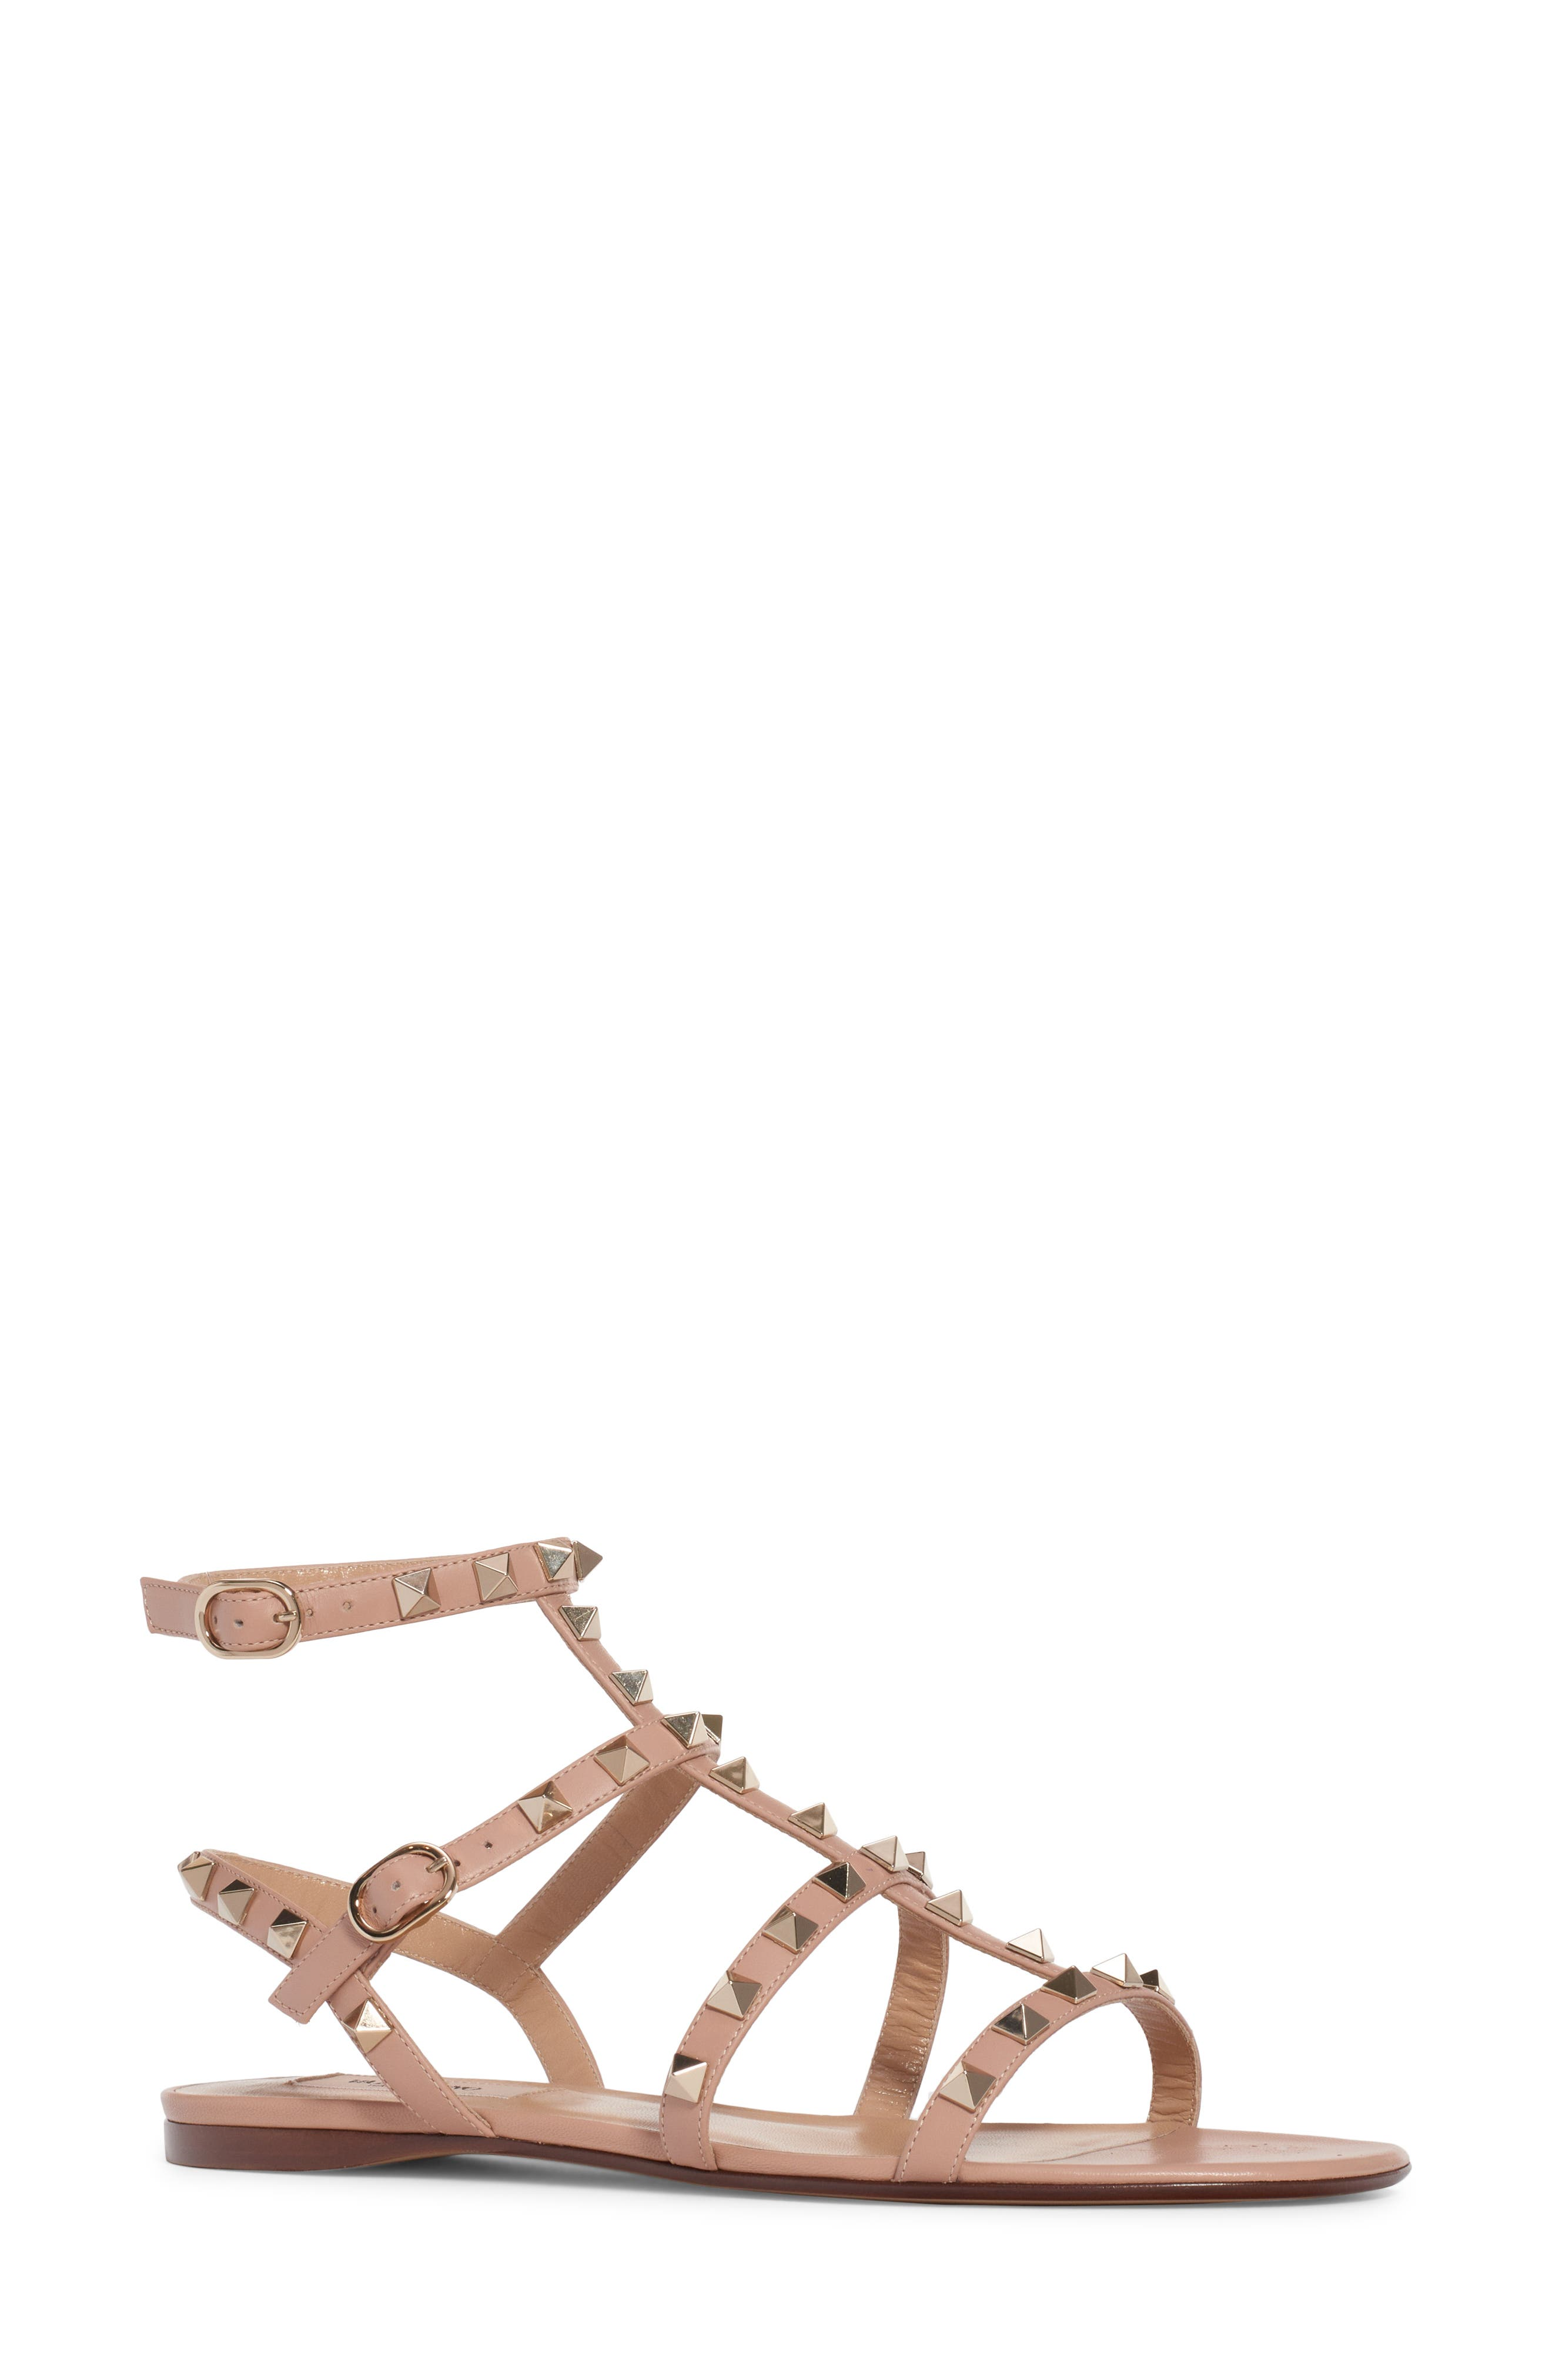 Rockstud Cage Sandal,                             Main thumbnail 1, color,                             ROSE BEIGE